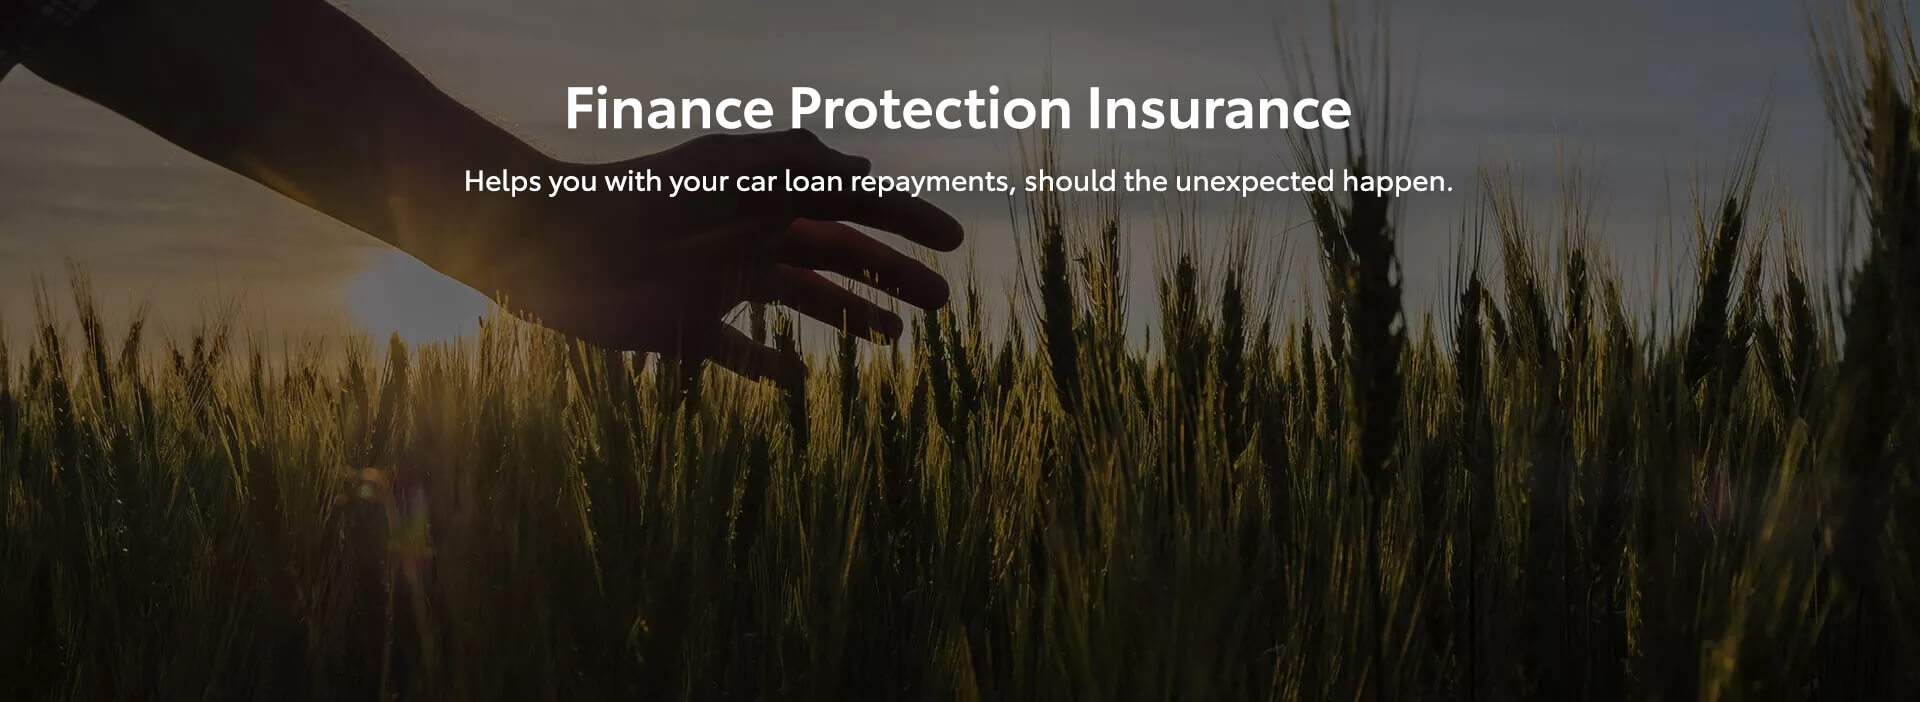 Finance Protection Insurance